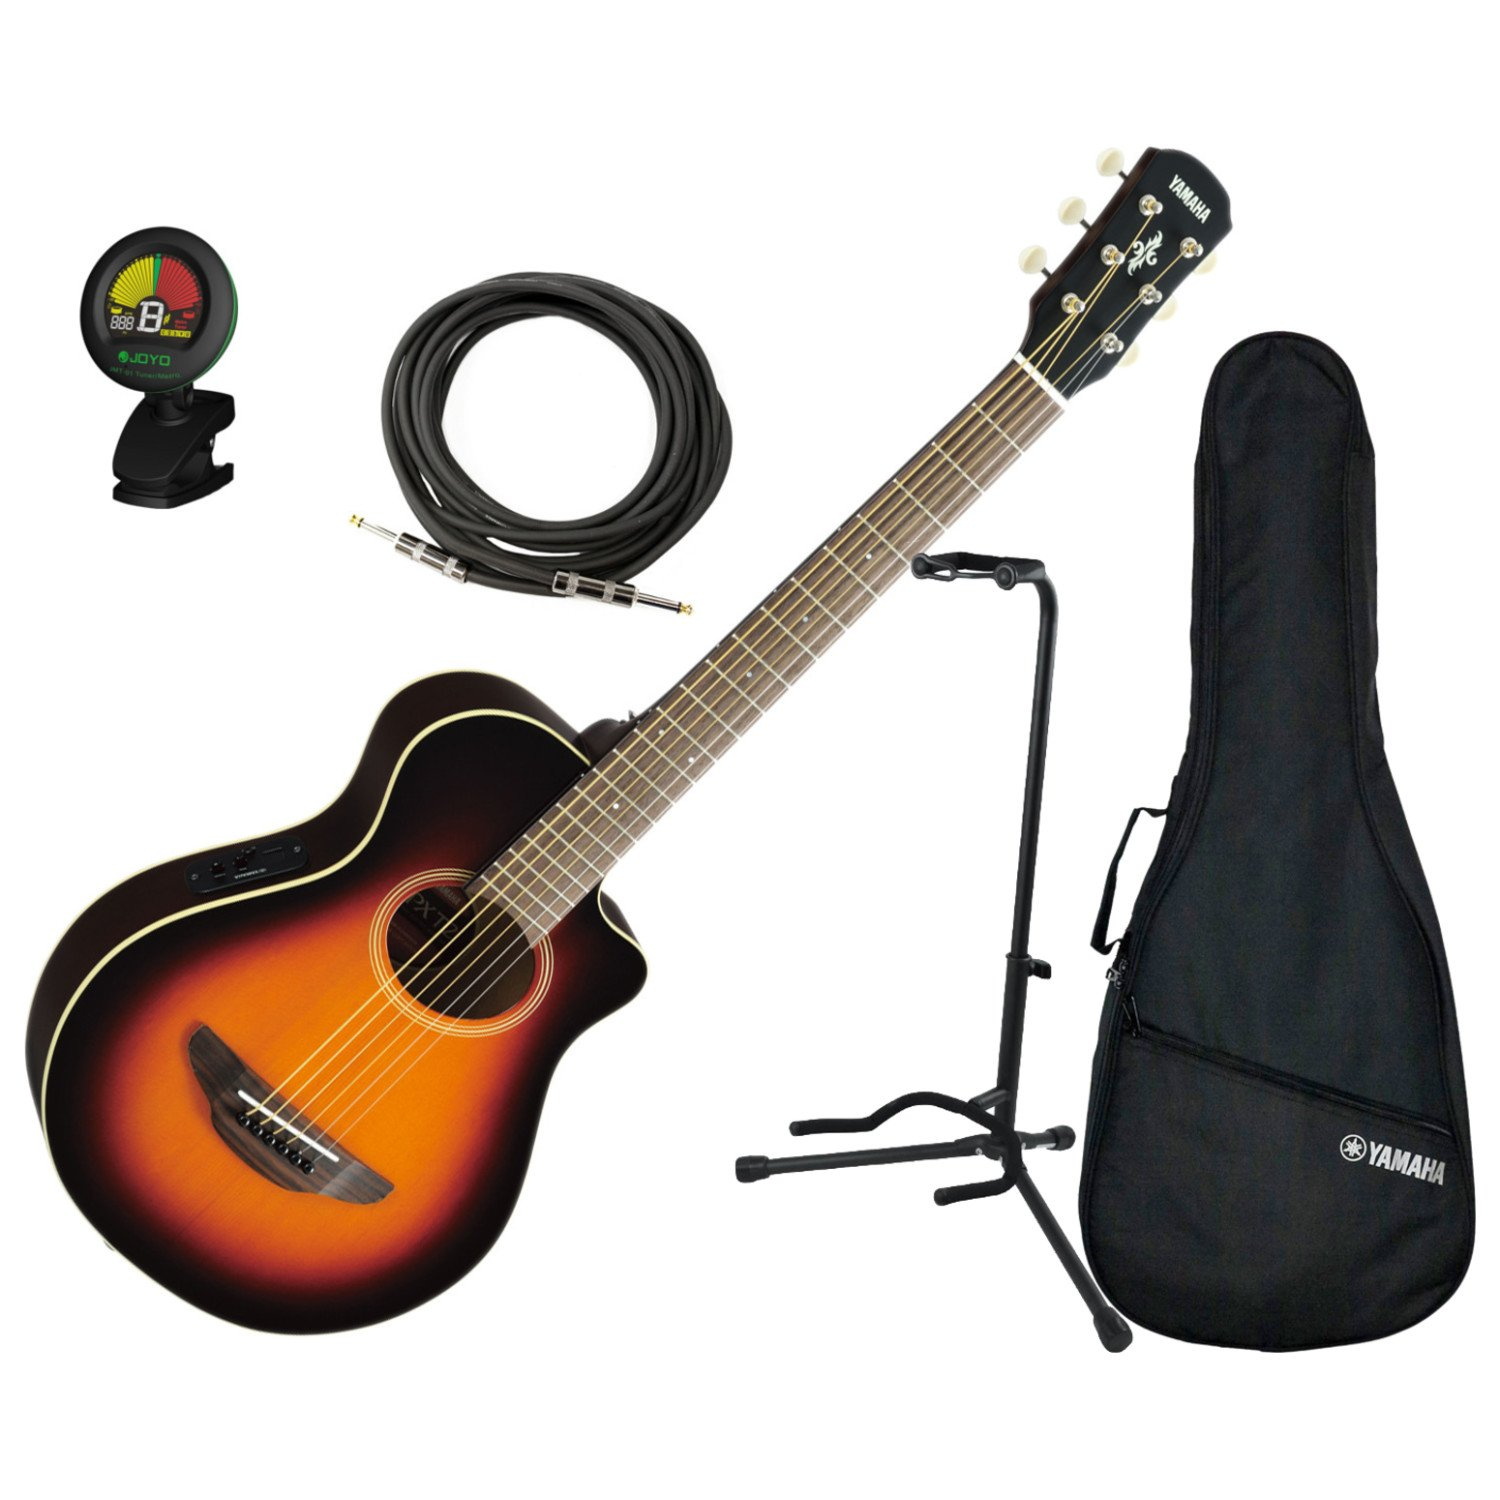 Yamaha APXT2 OVS 3/4 Scale MINI Acoustic Electric Guitar Old Violin Burst w/ Gig Bag, Stand, Tuner, and Cable Unknown APXT2 OVS BUNDLE